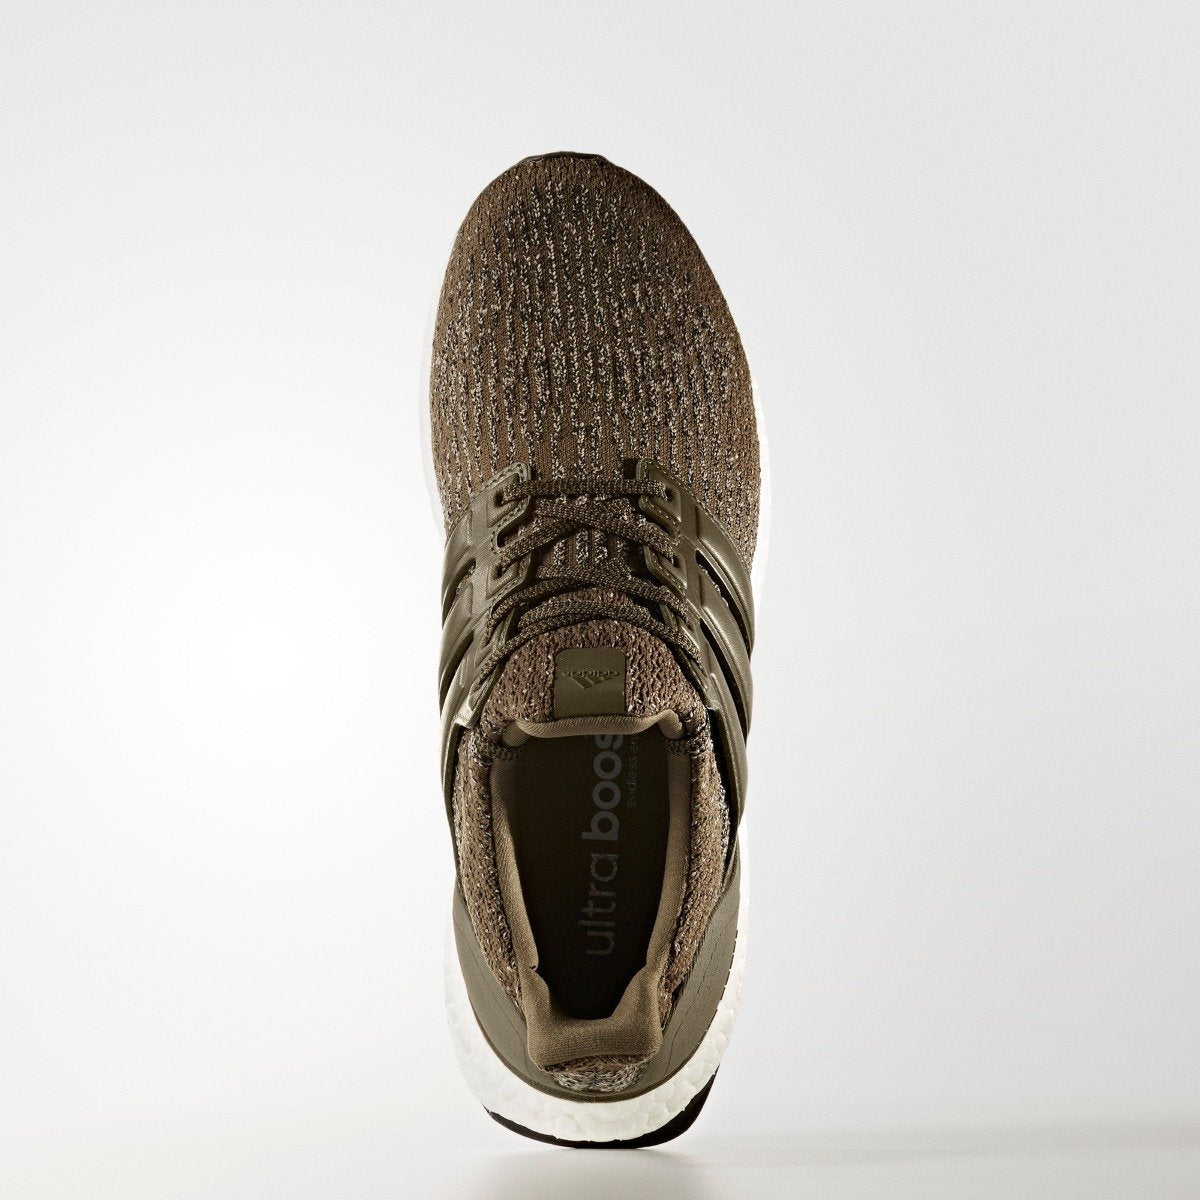 83561a2fae0c Men s adidas Running Ultraboost Shoes Trace Olive S82018